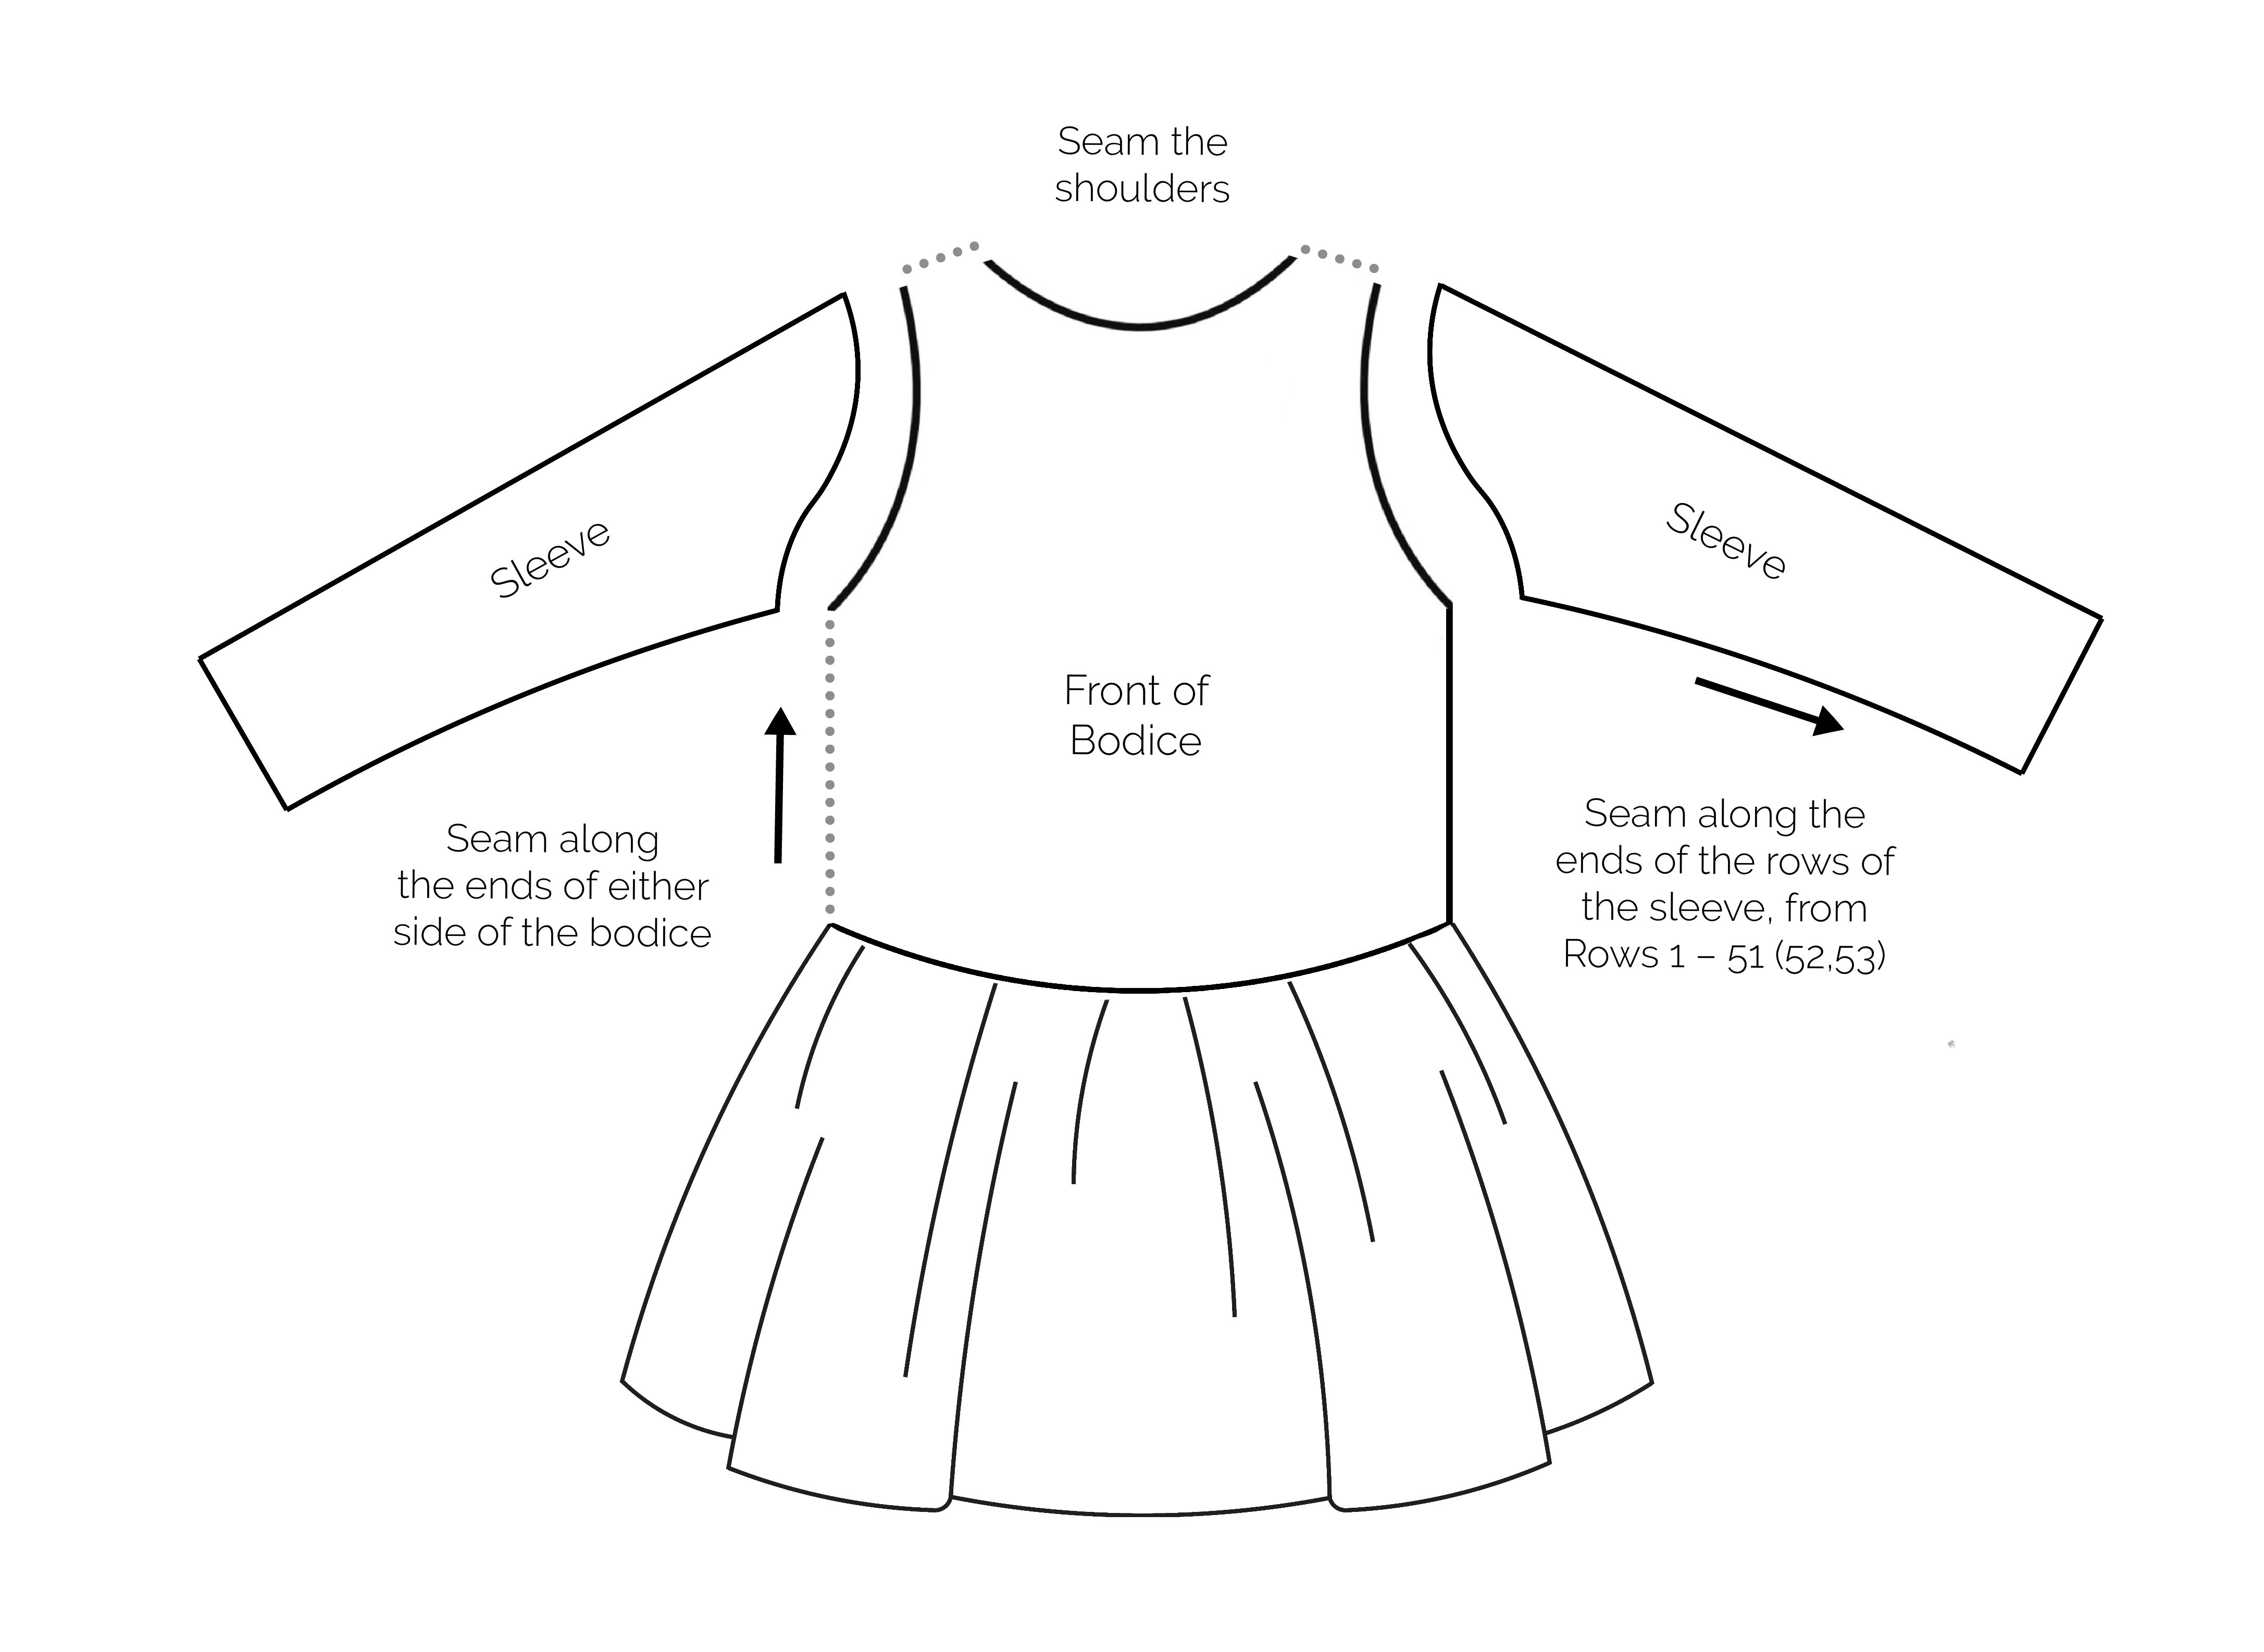 Cables Crochet Shawl Diagram Wiring For Professional Diagrams Beginners Pretty In Peplum Top I Like Dragon Wing Patterns